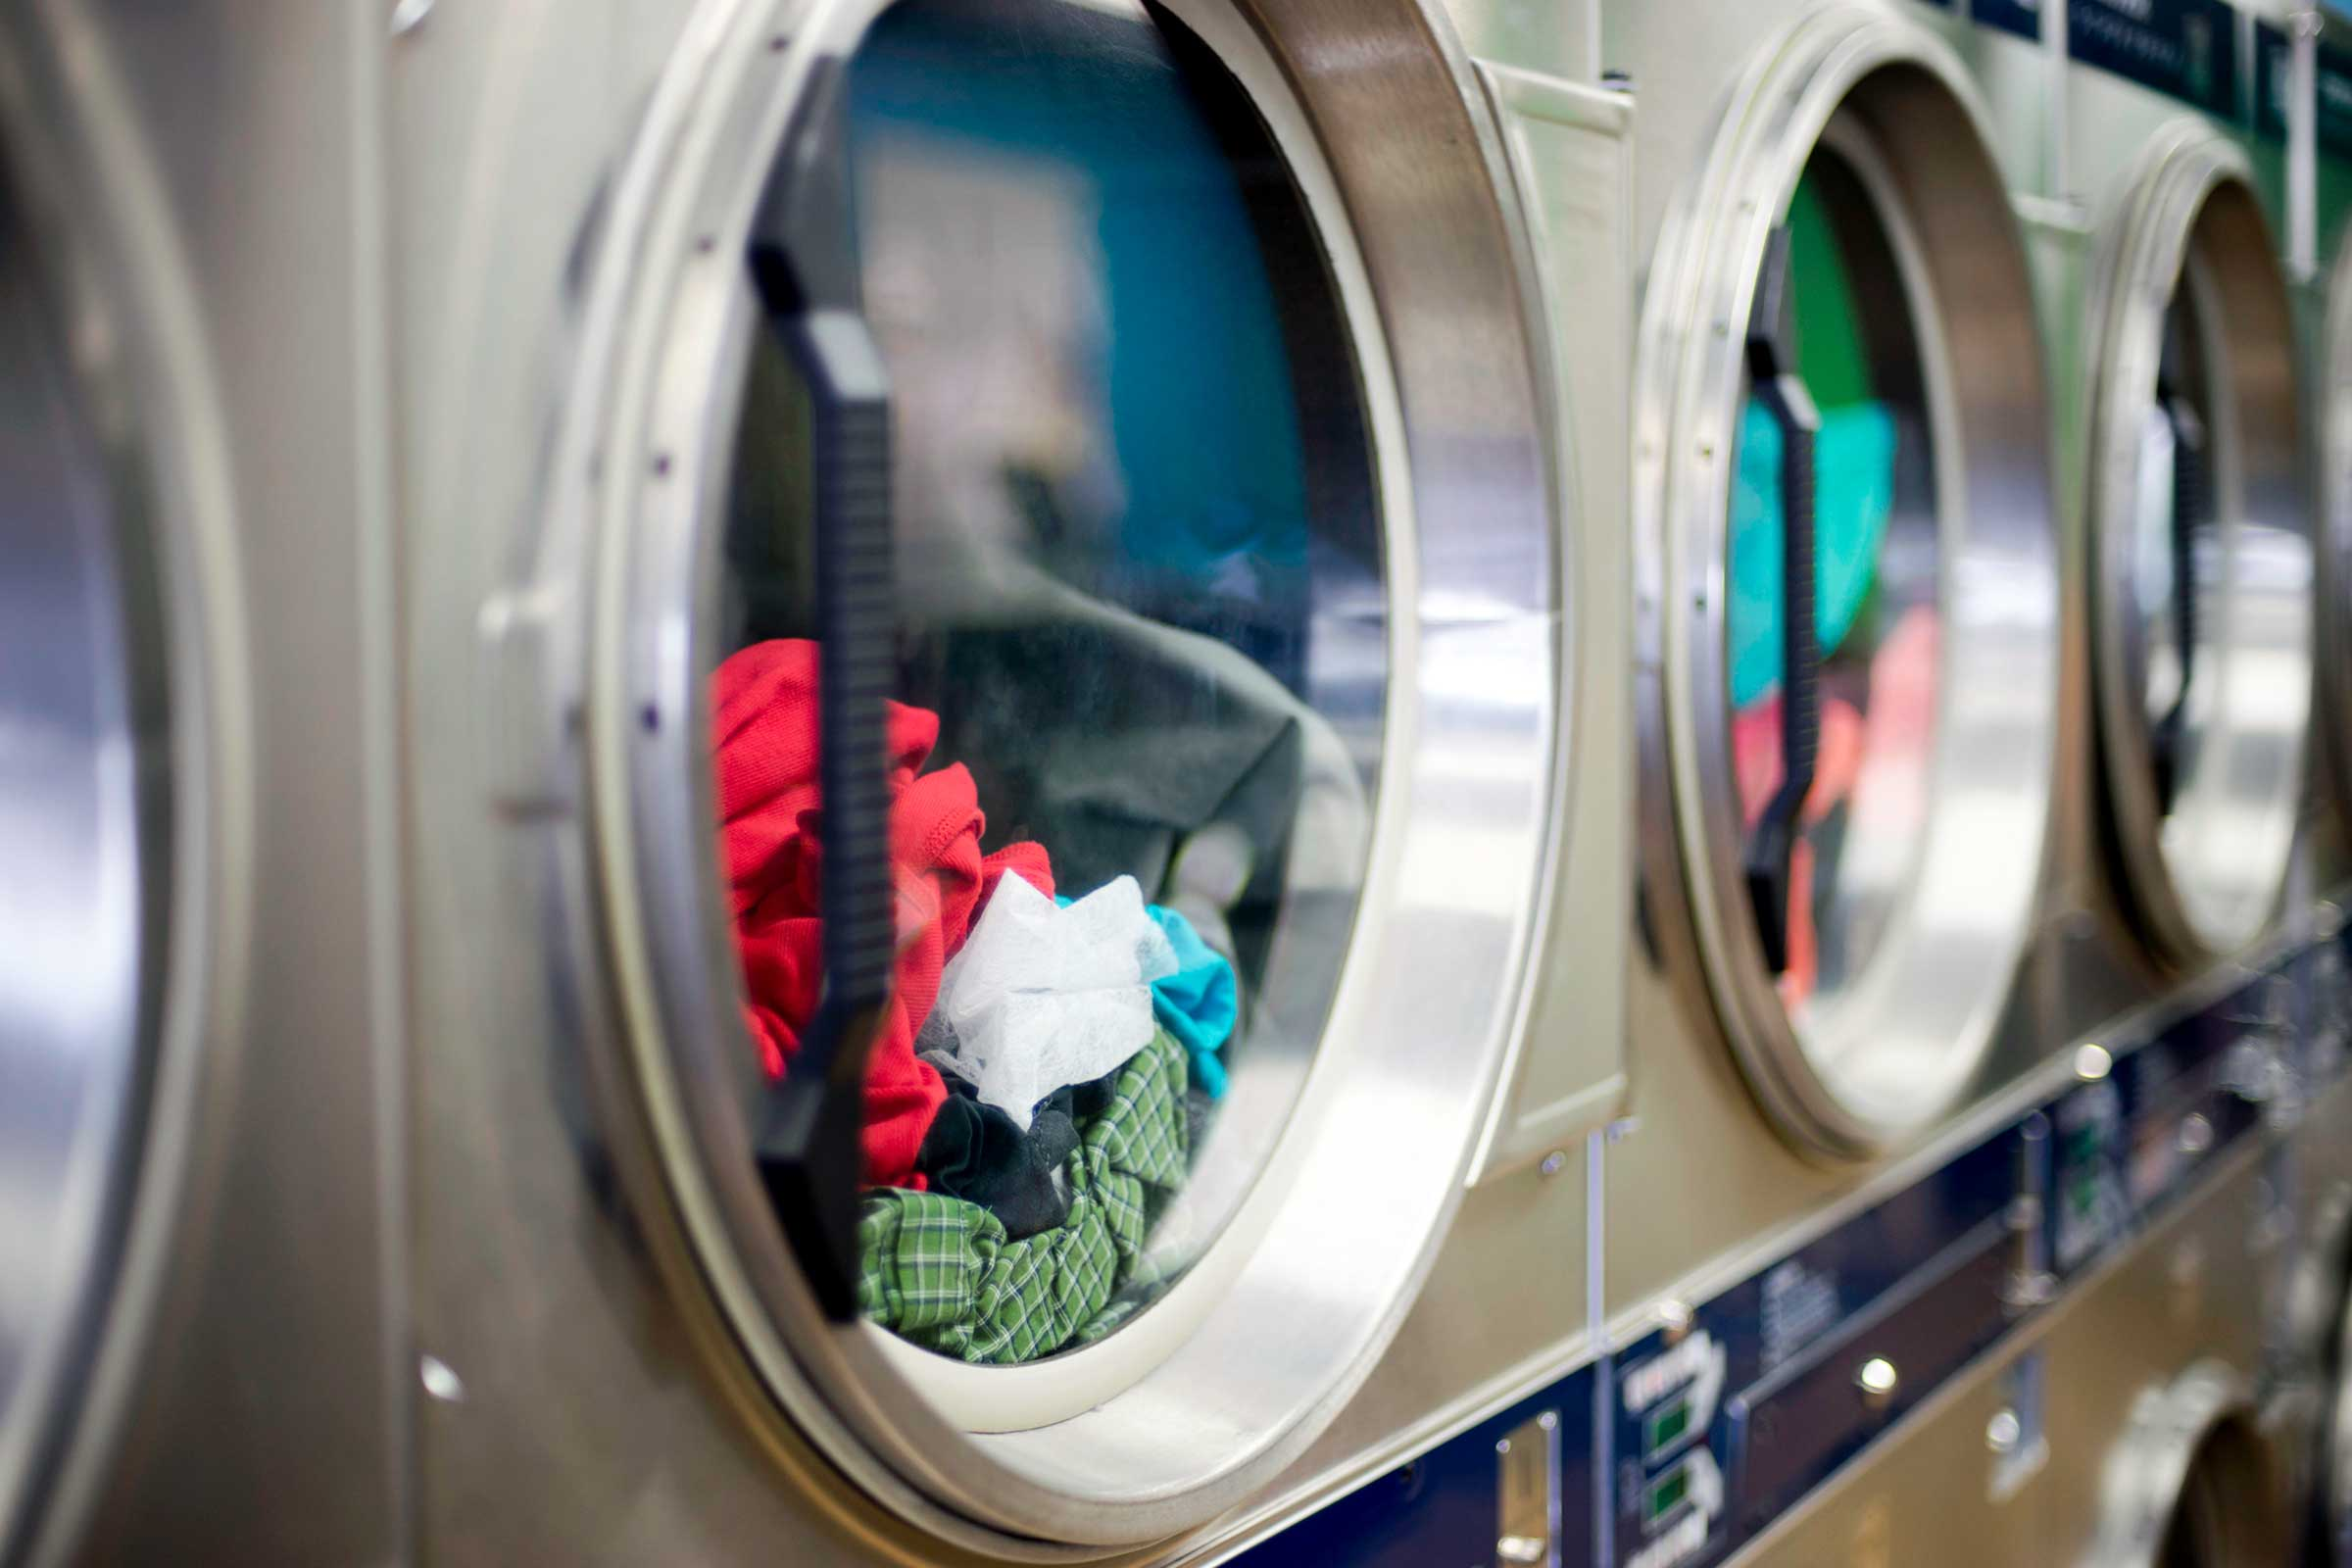 Pennsylvania Laundromat to Pay Workers $478k for Wage Violations